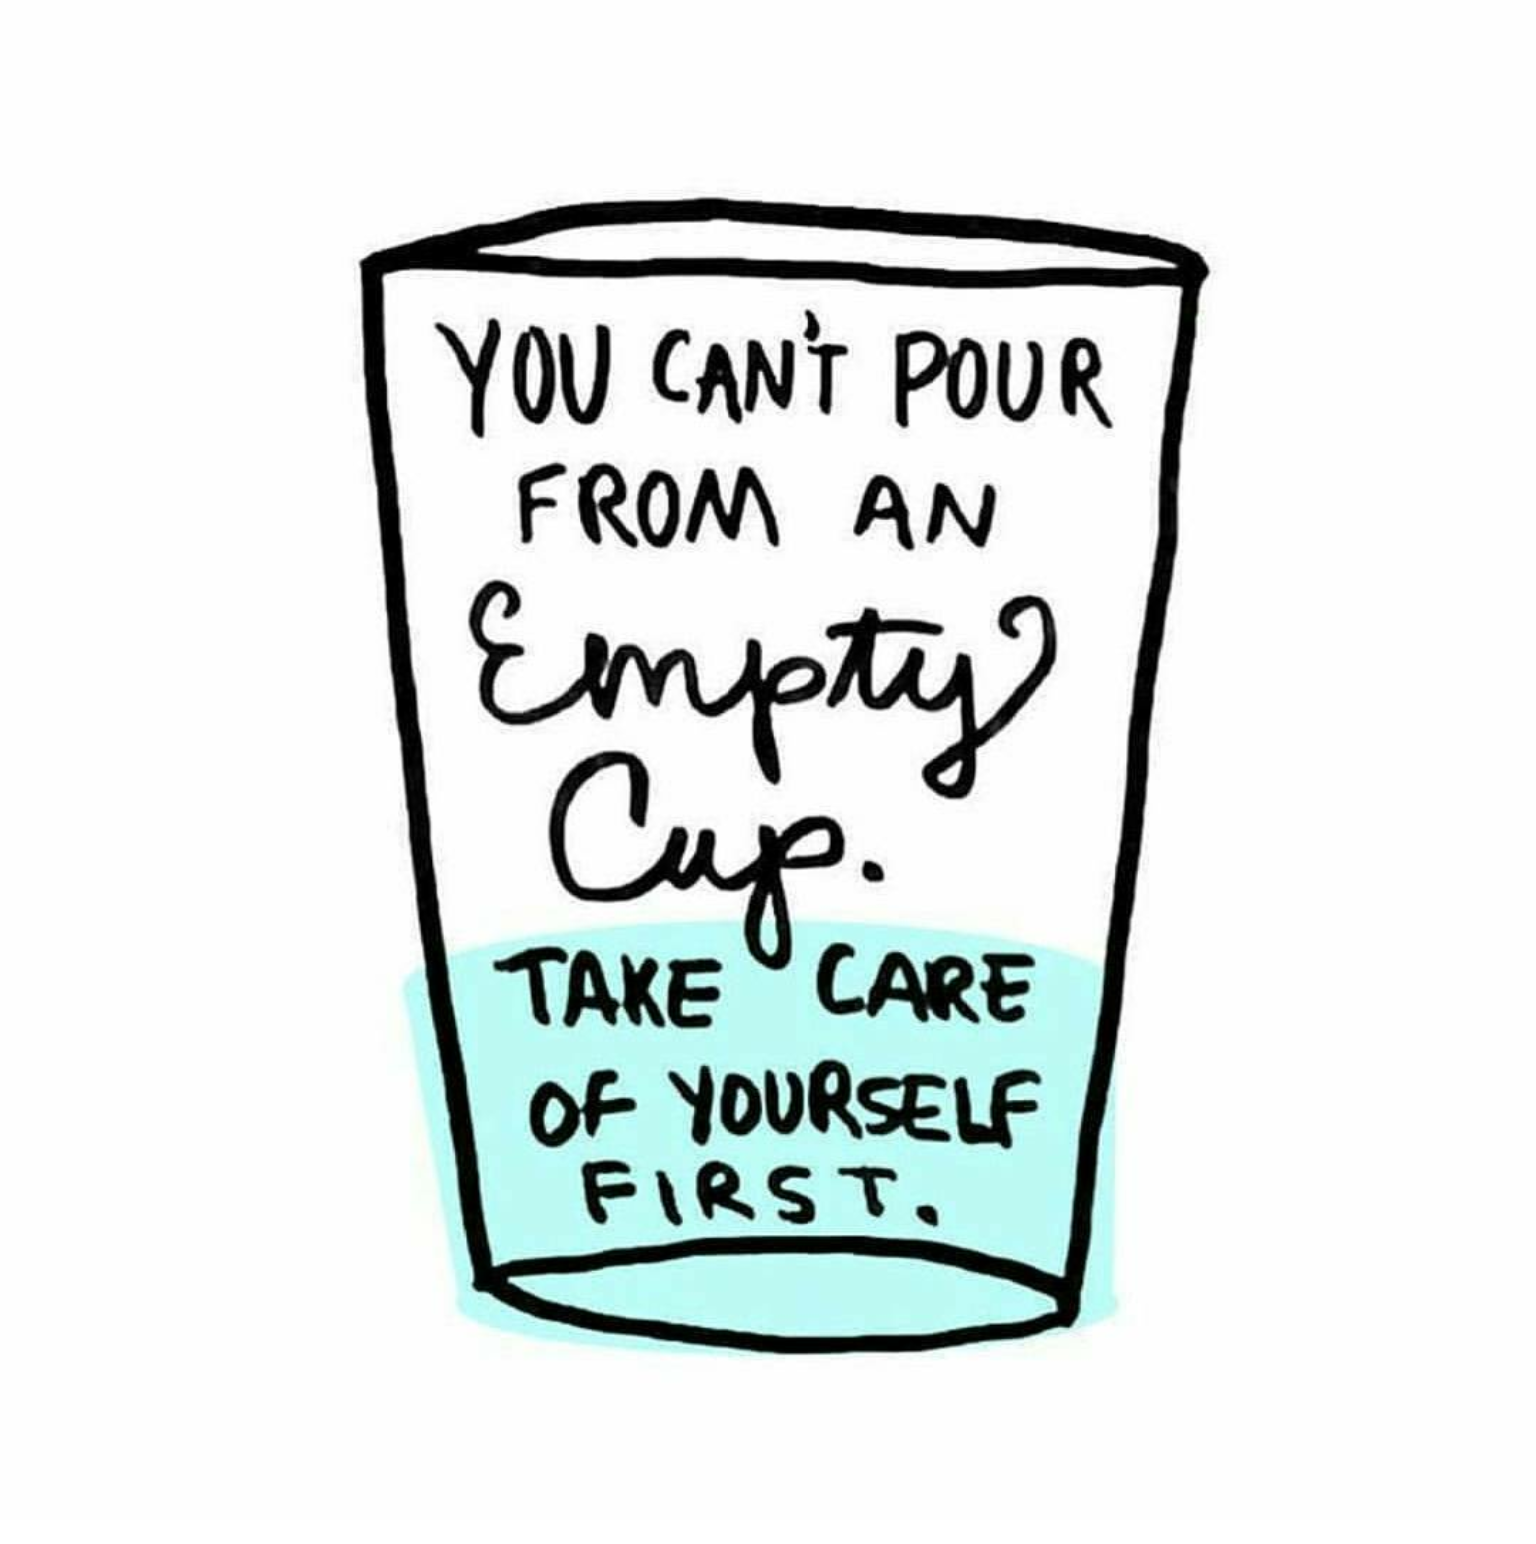 image: You can't pour from an empty cup. Take care of yourself first.